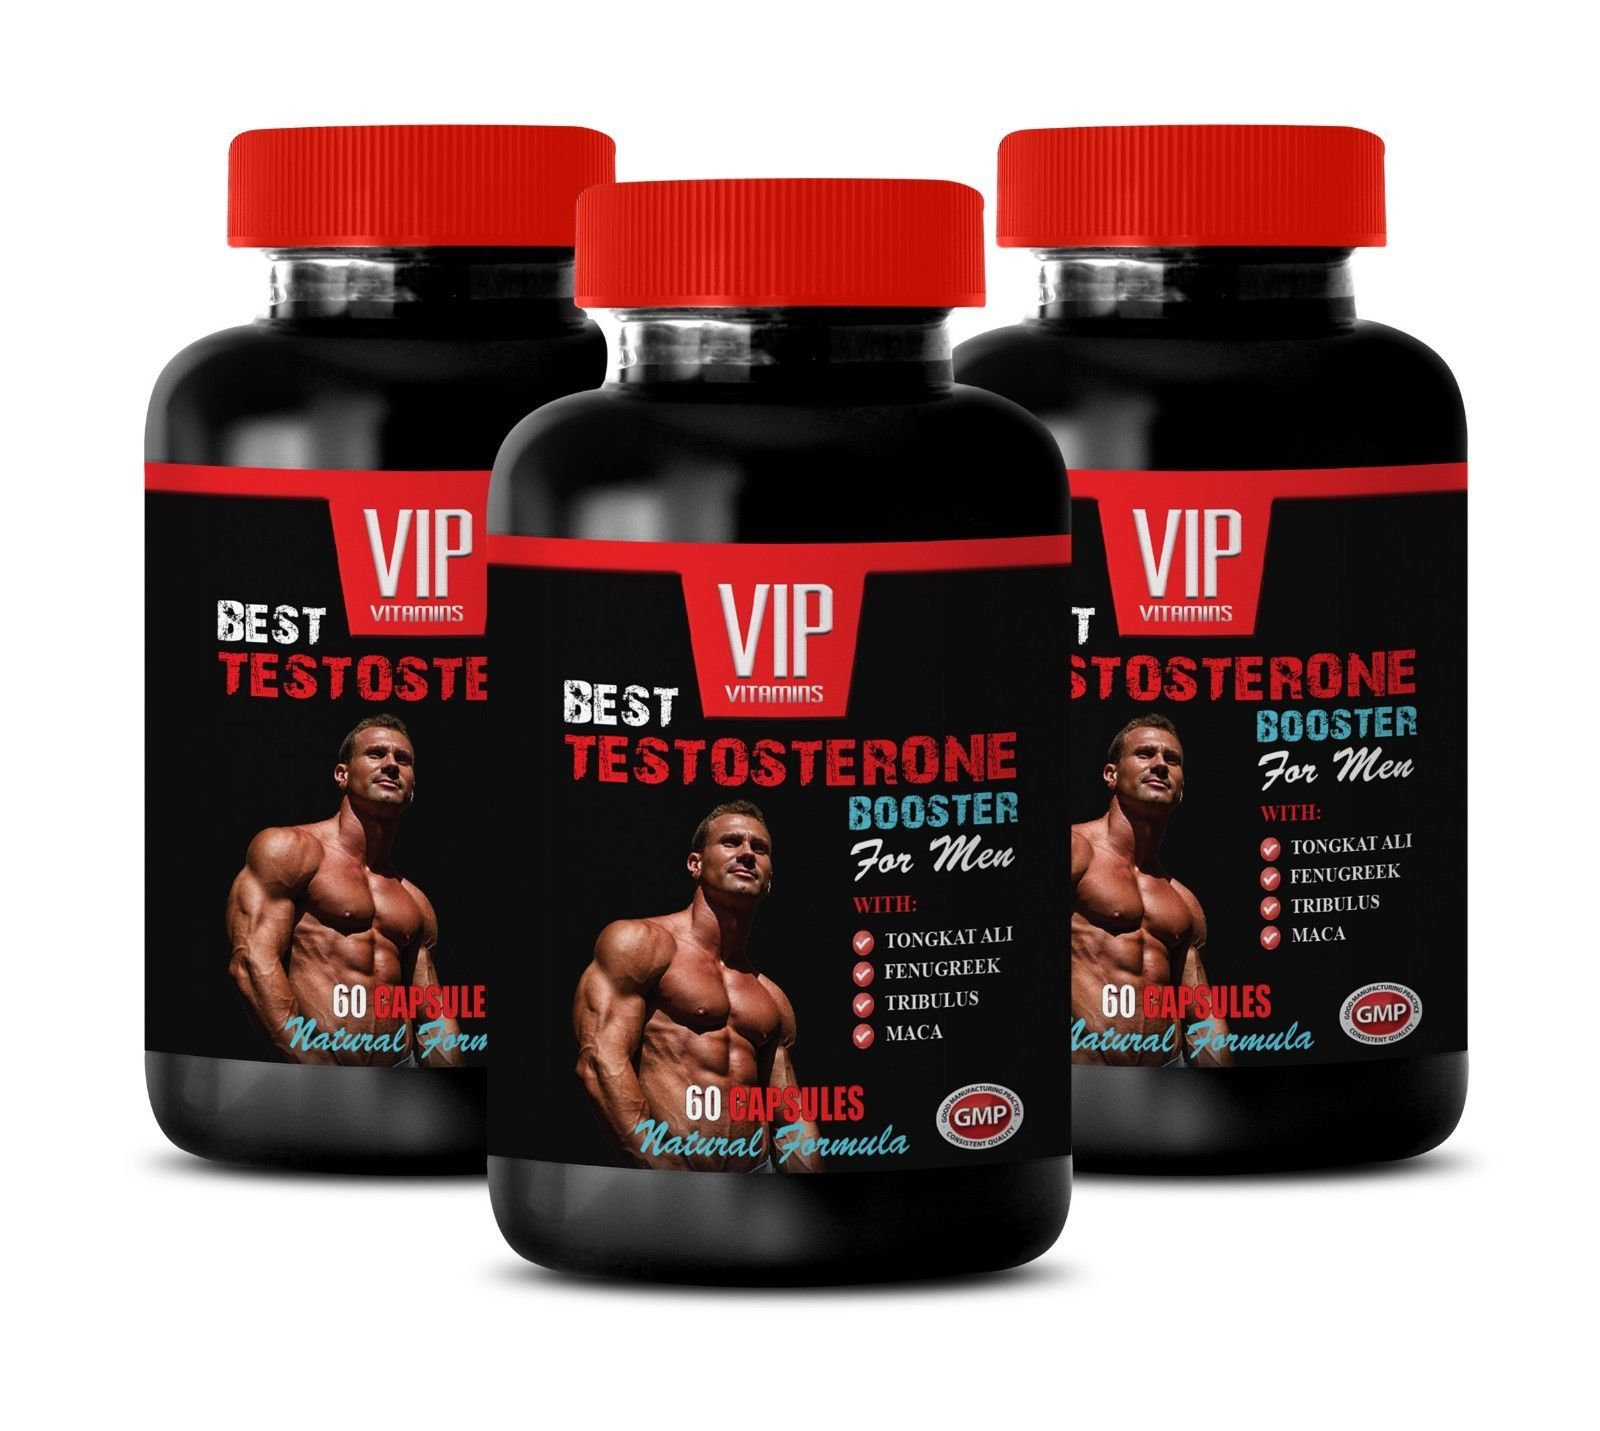 testosterone booster for men - BEST TESTOSTERONE BOOSTER 3B- ginseng capsules - Vitamins & Minerals